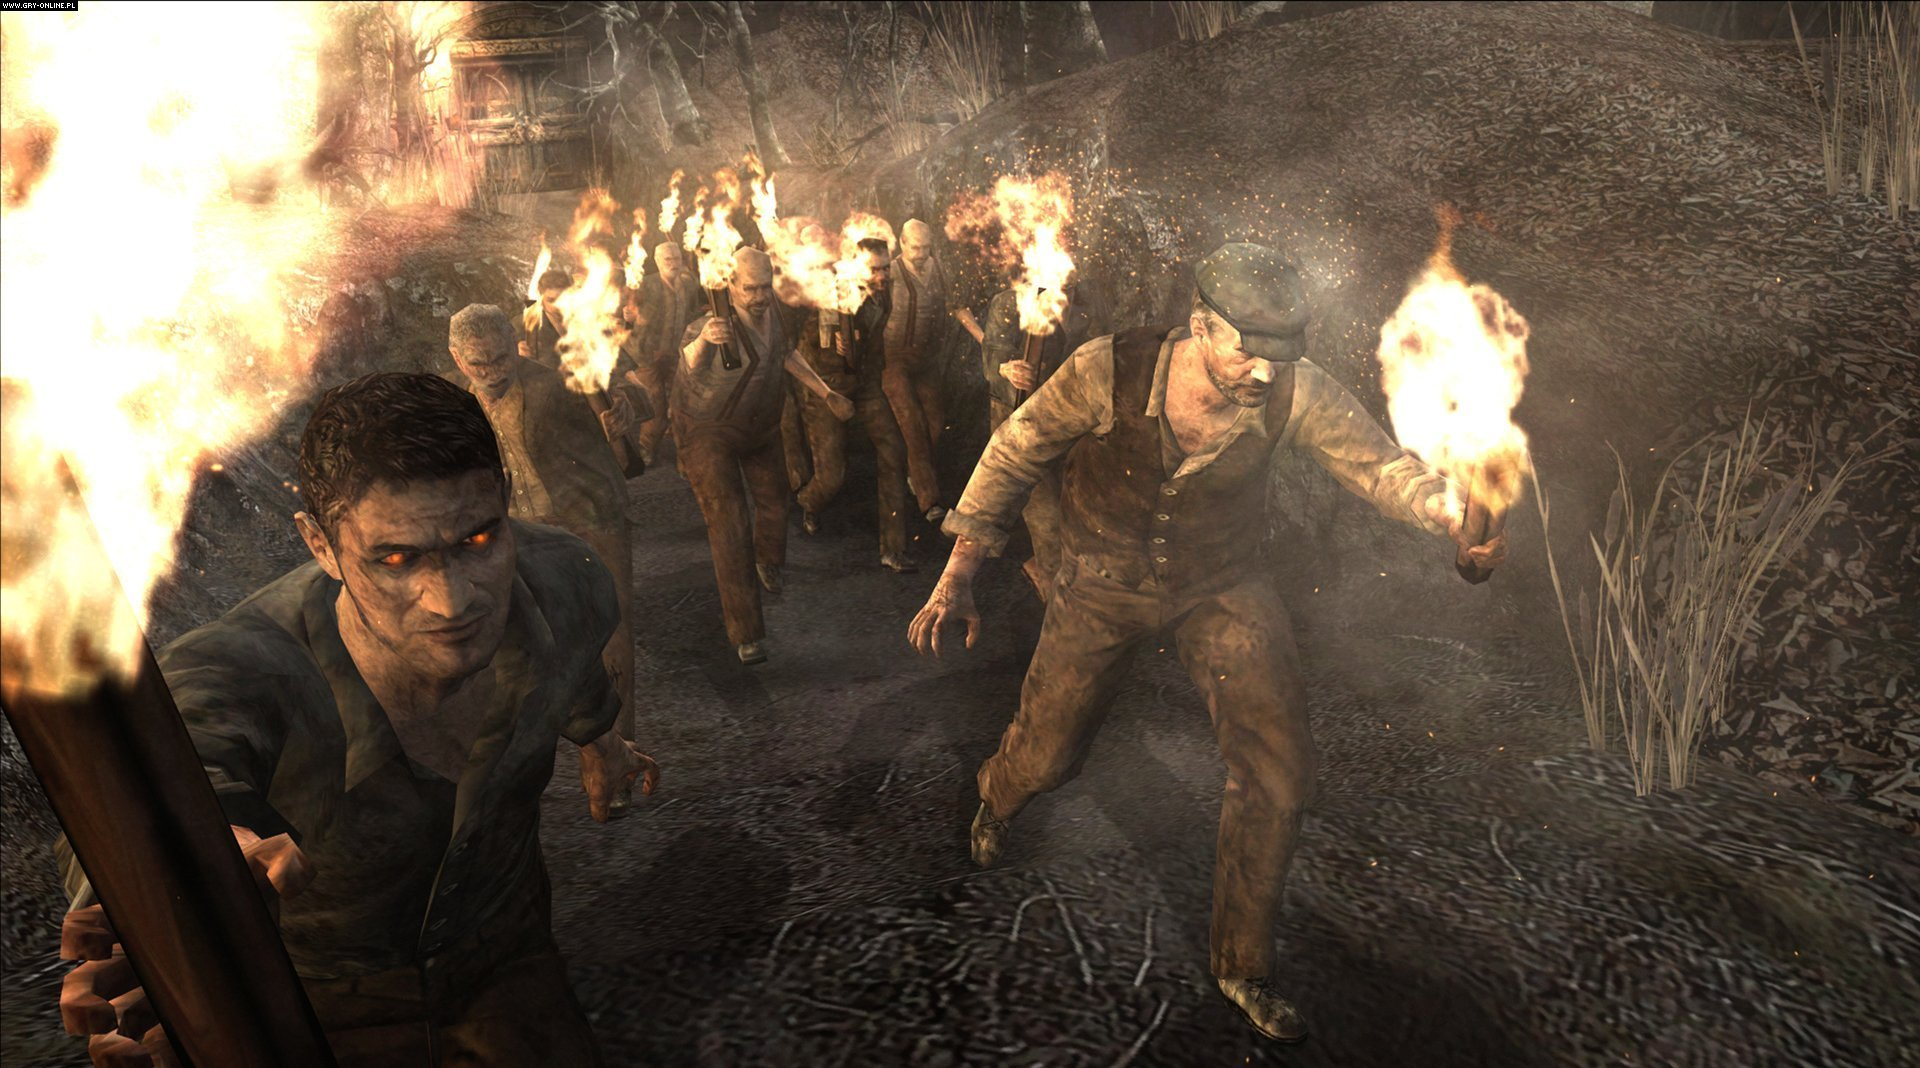 Resident Evil 4 HD PC, PS4, XONE, Switch Gry Screen 6/38, Capcom